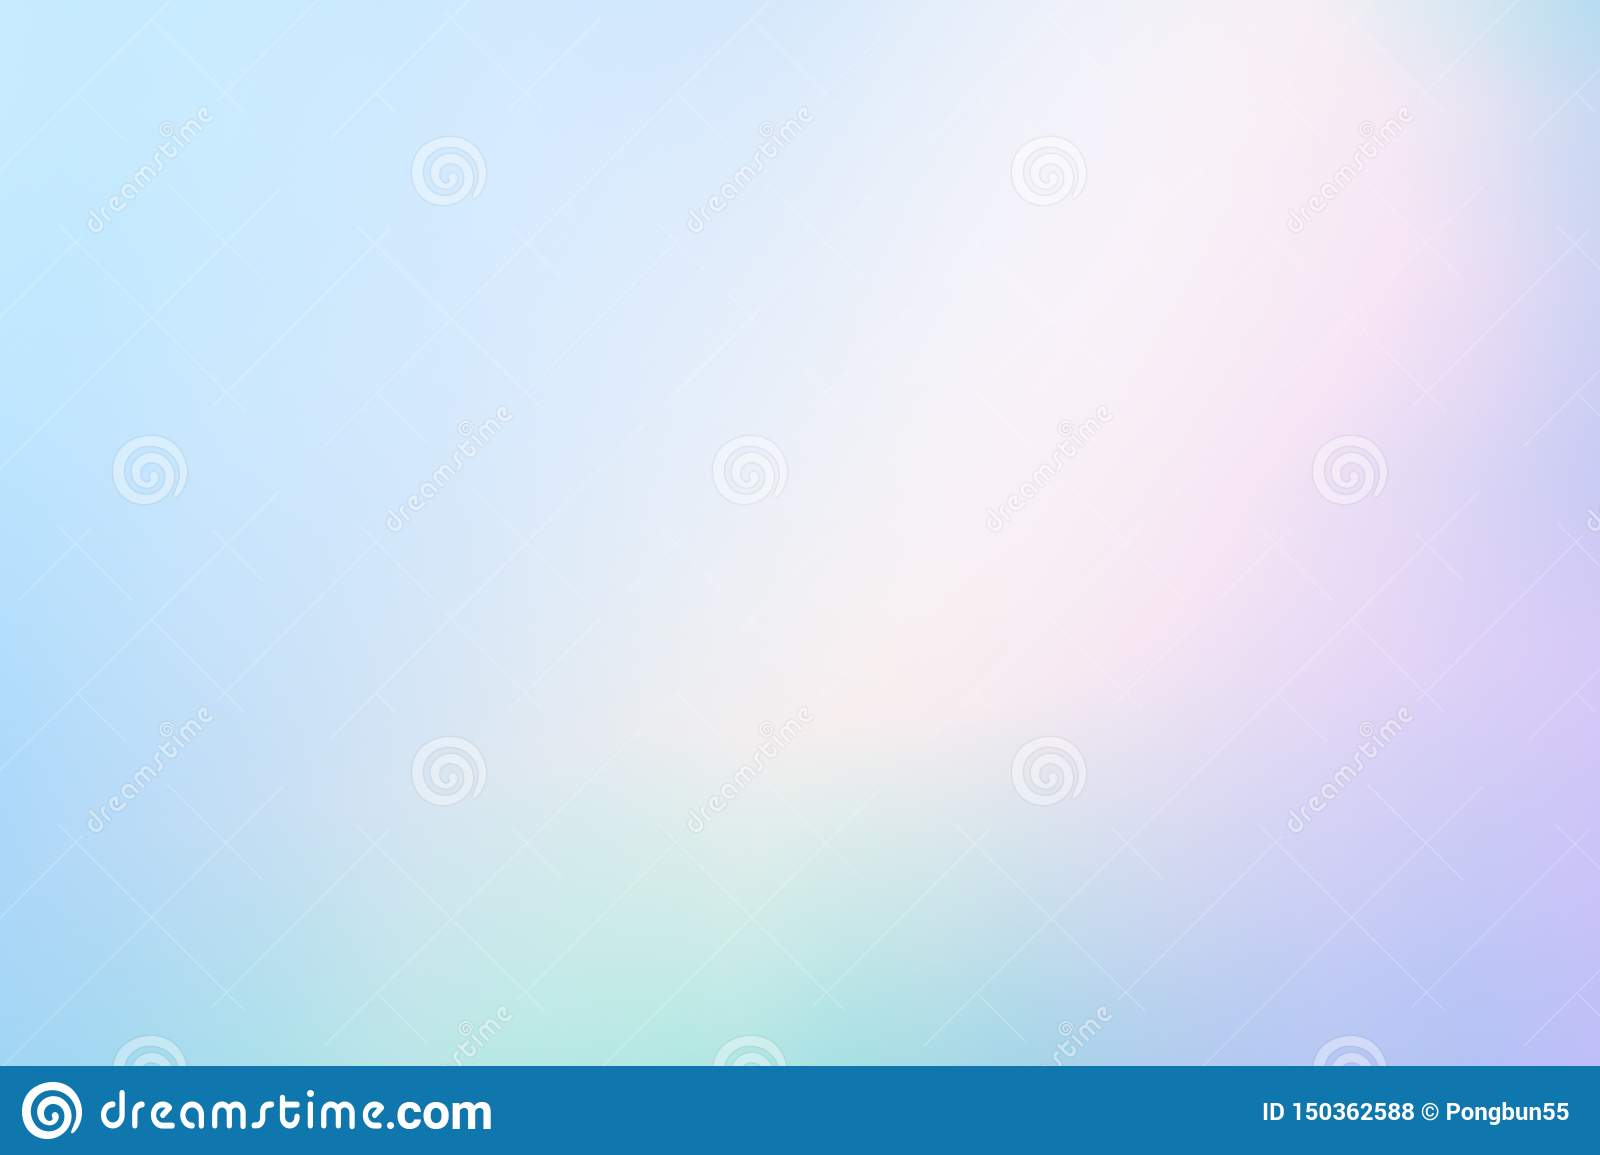 Gradient purple and blue color abstract background